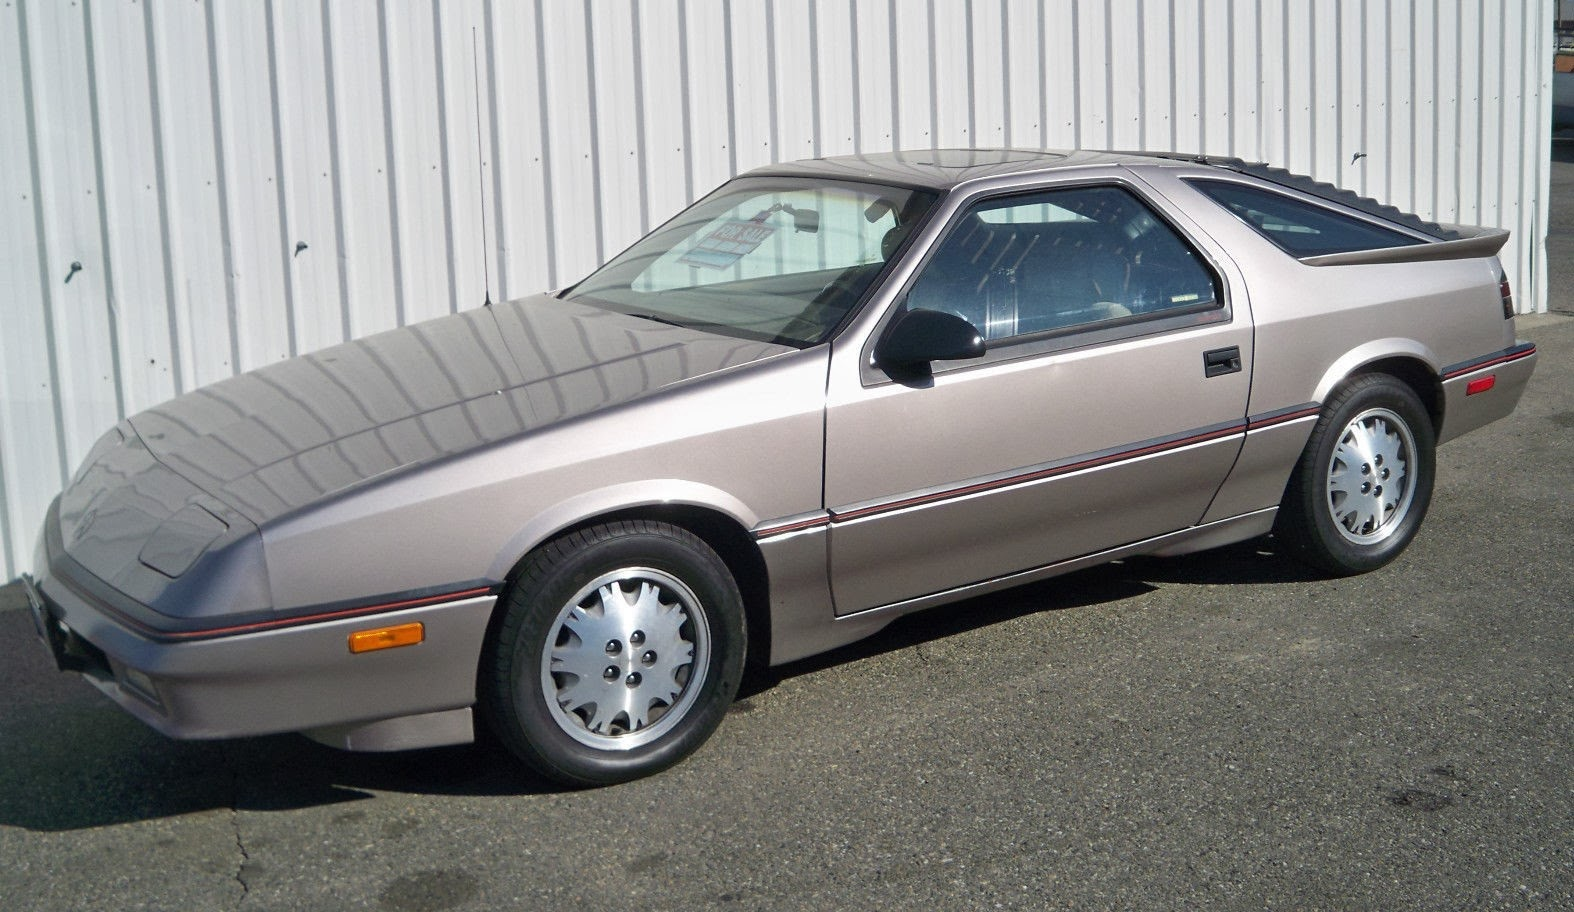 CLIC CARS OF THE 1980's: 1988 Dodge Daytona Pacifica 2.2L Turbo